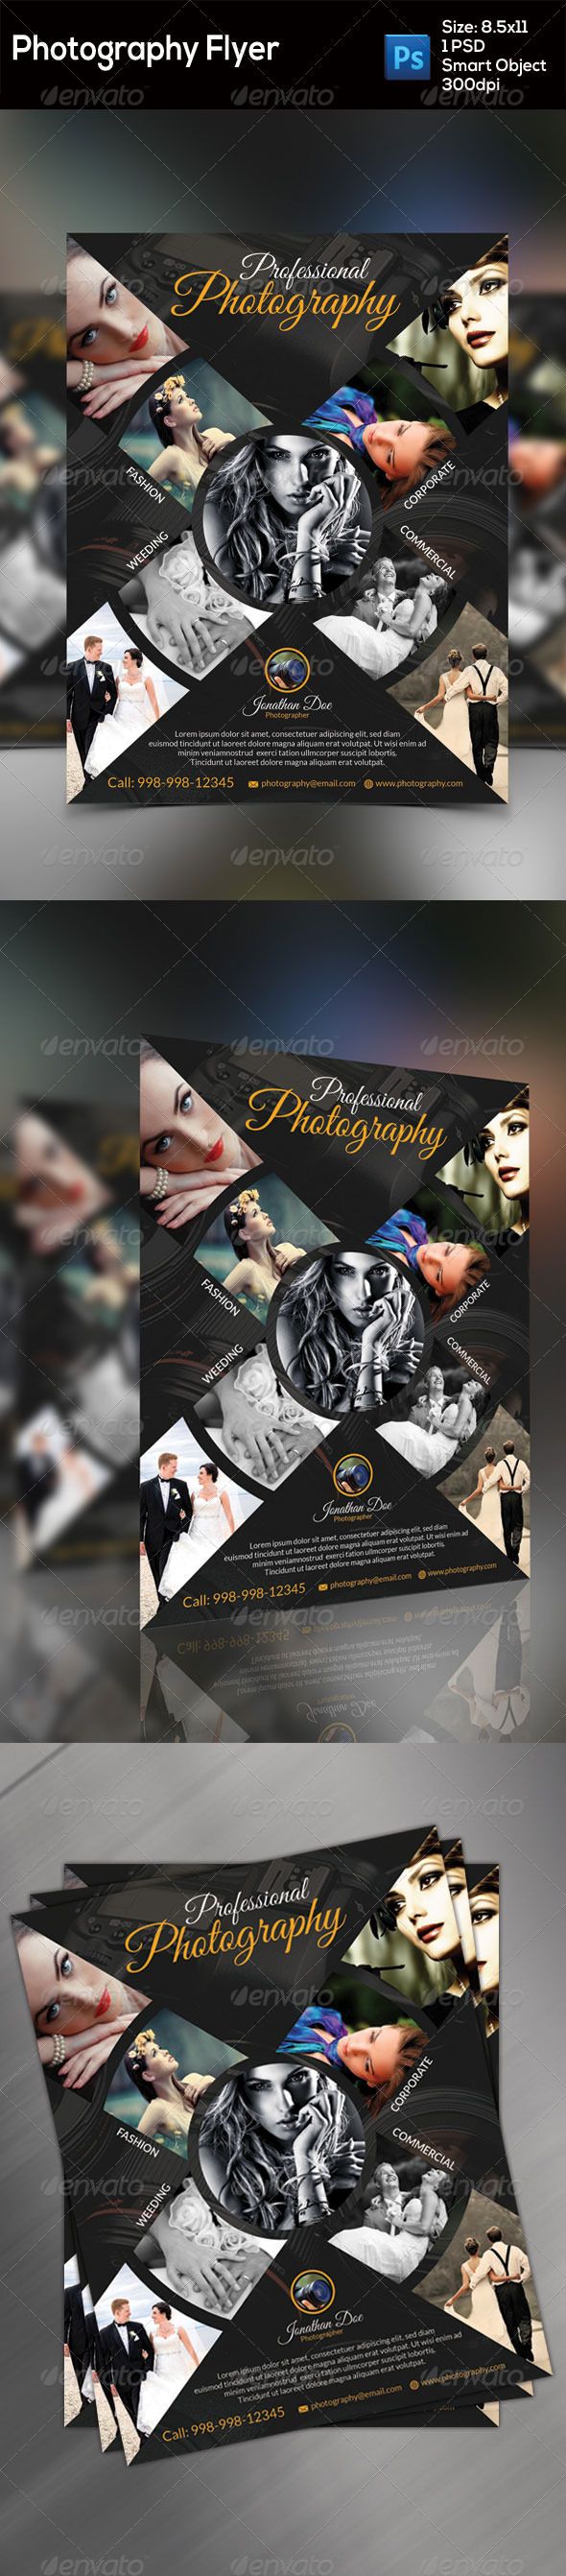 GraphicRiver Photography Flyer 8773862